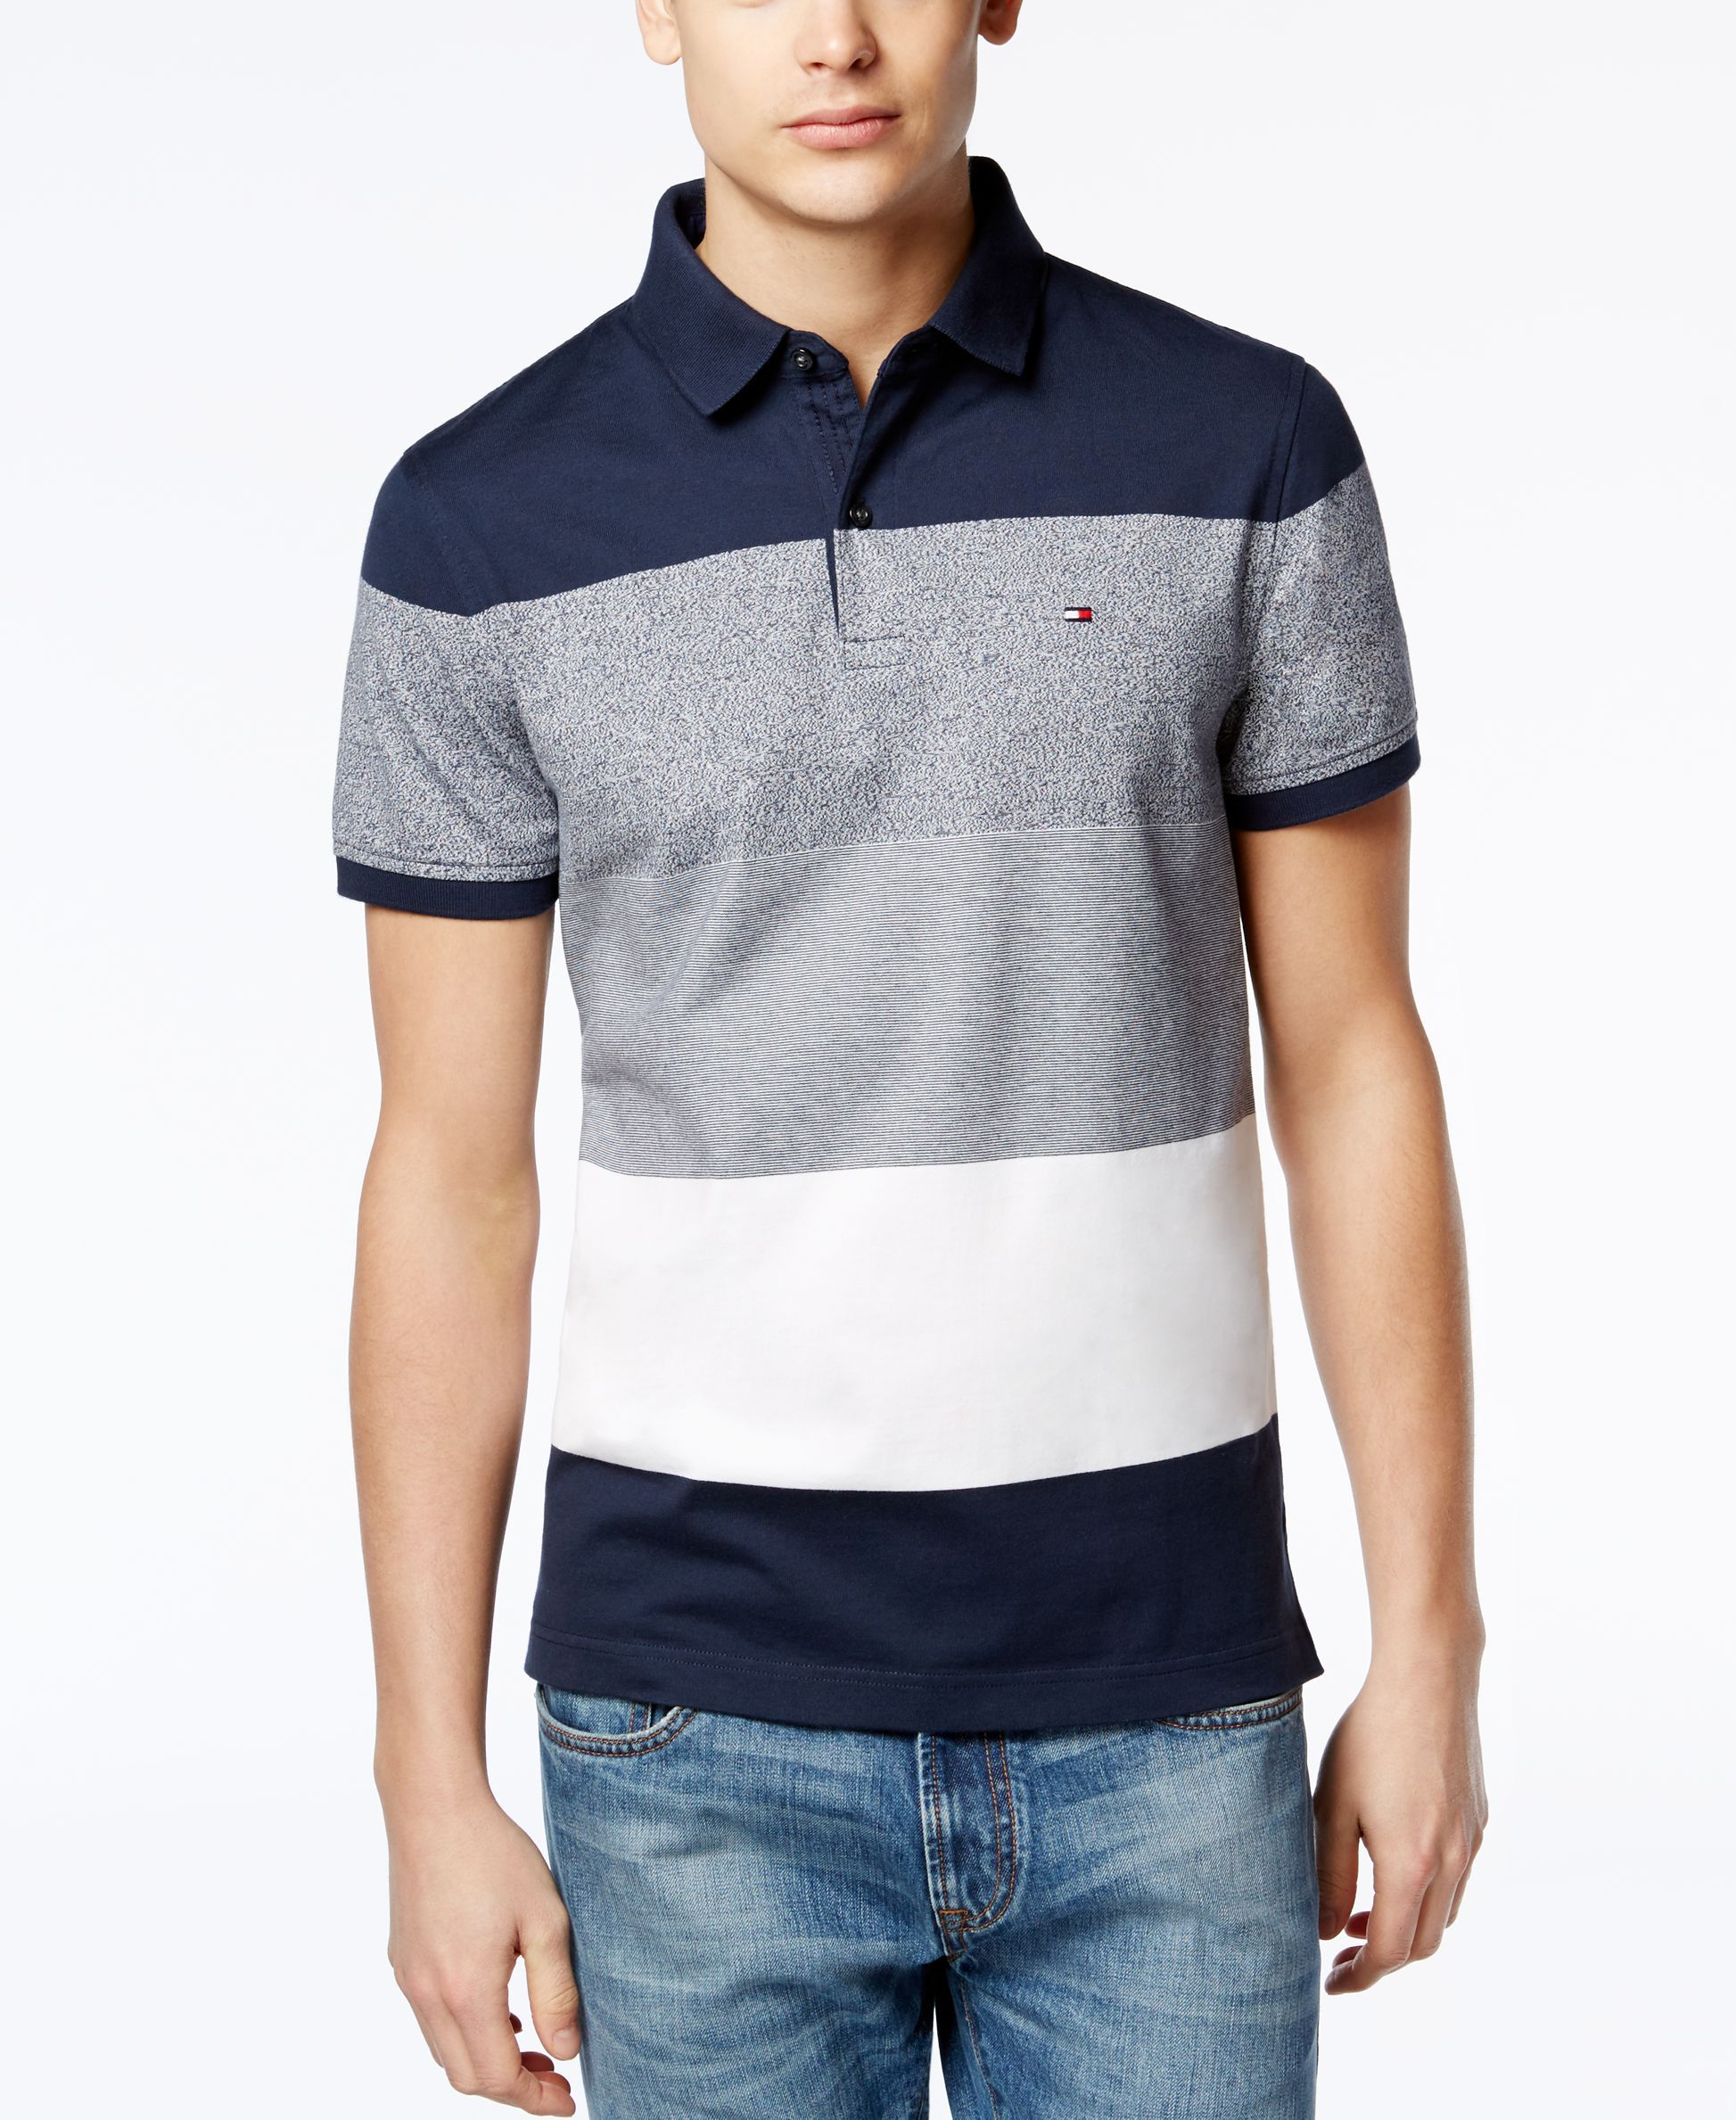 37199740 Tommy Hilfiger Outlet, Tommy Hilfiger Shirts, Polo Shirt Style, Striped  Polo Shirt,